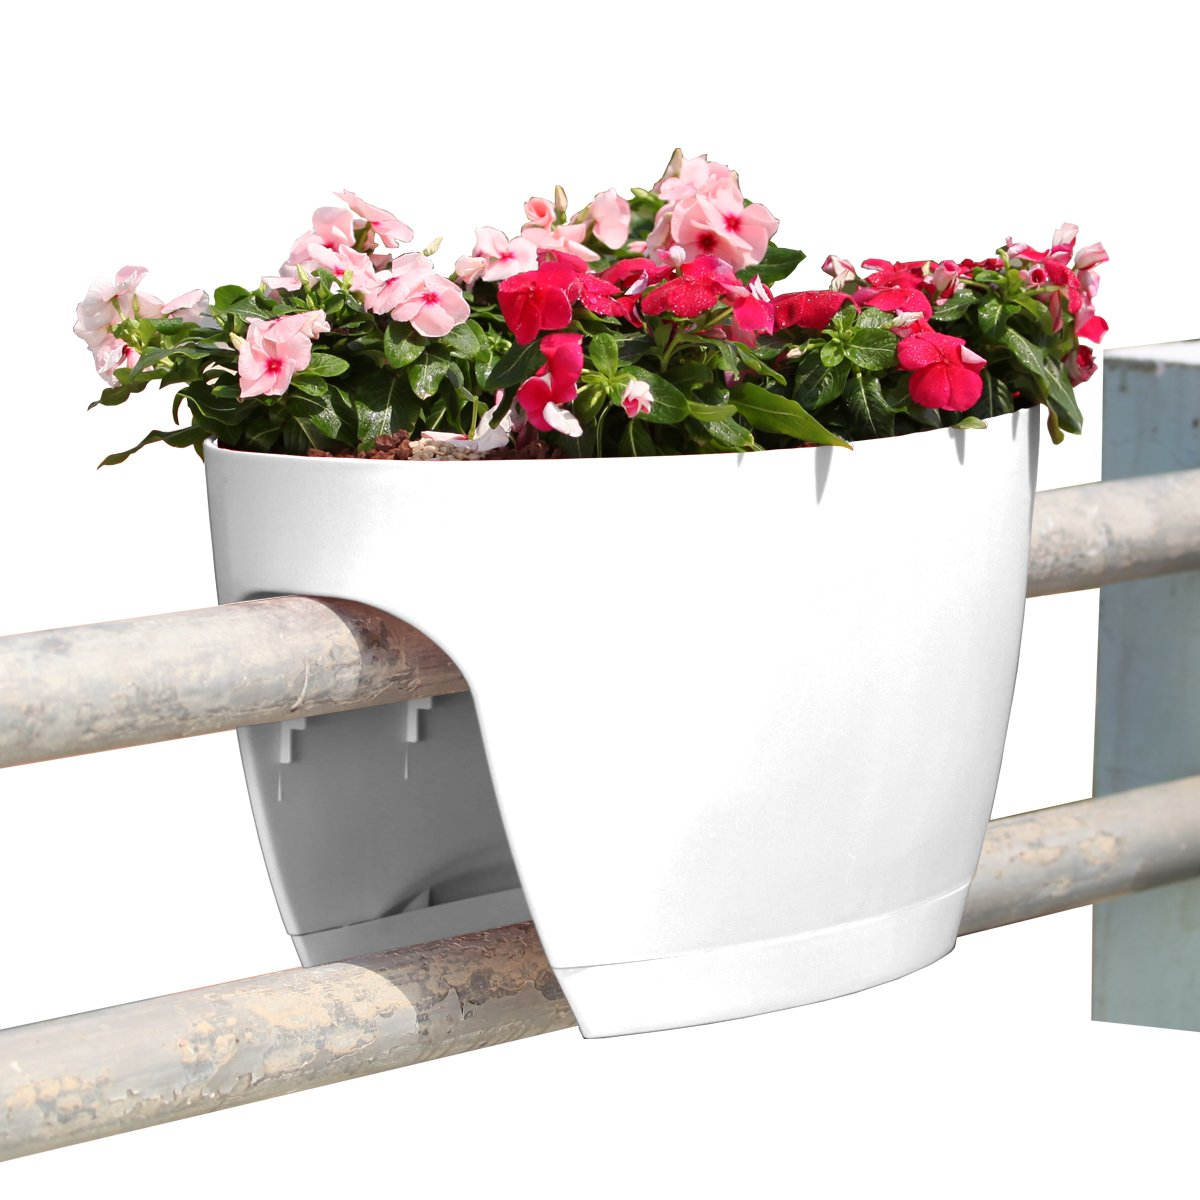 Greenbo XL Deck Rail Planter Box with Drainage trays, 24-Inch, Color White - Set of 6